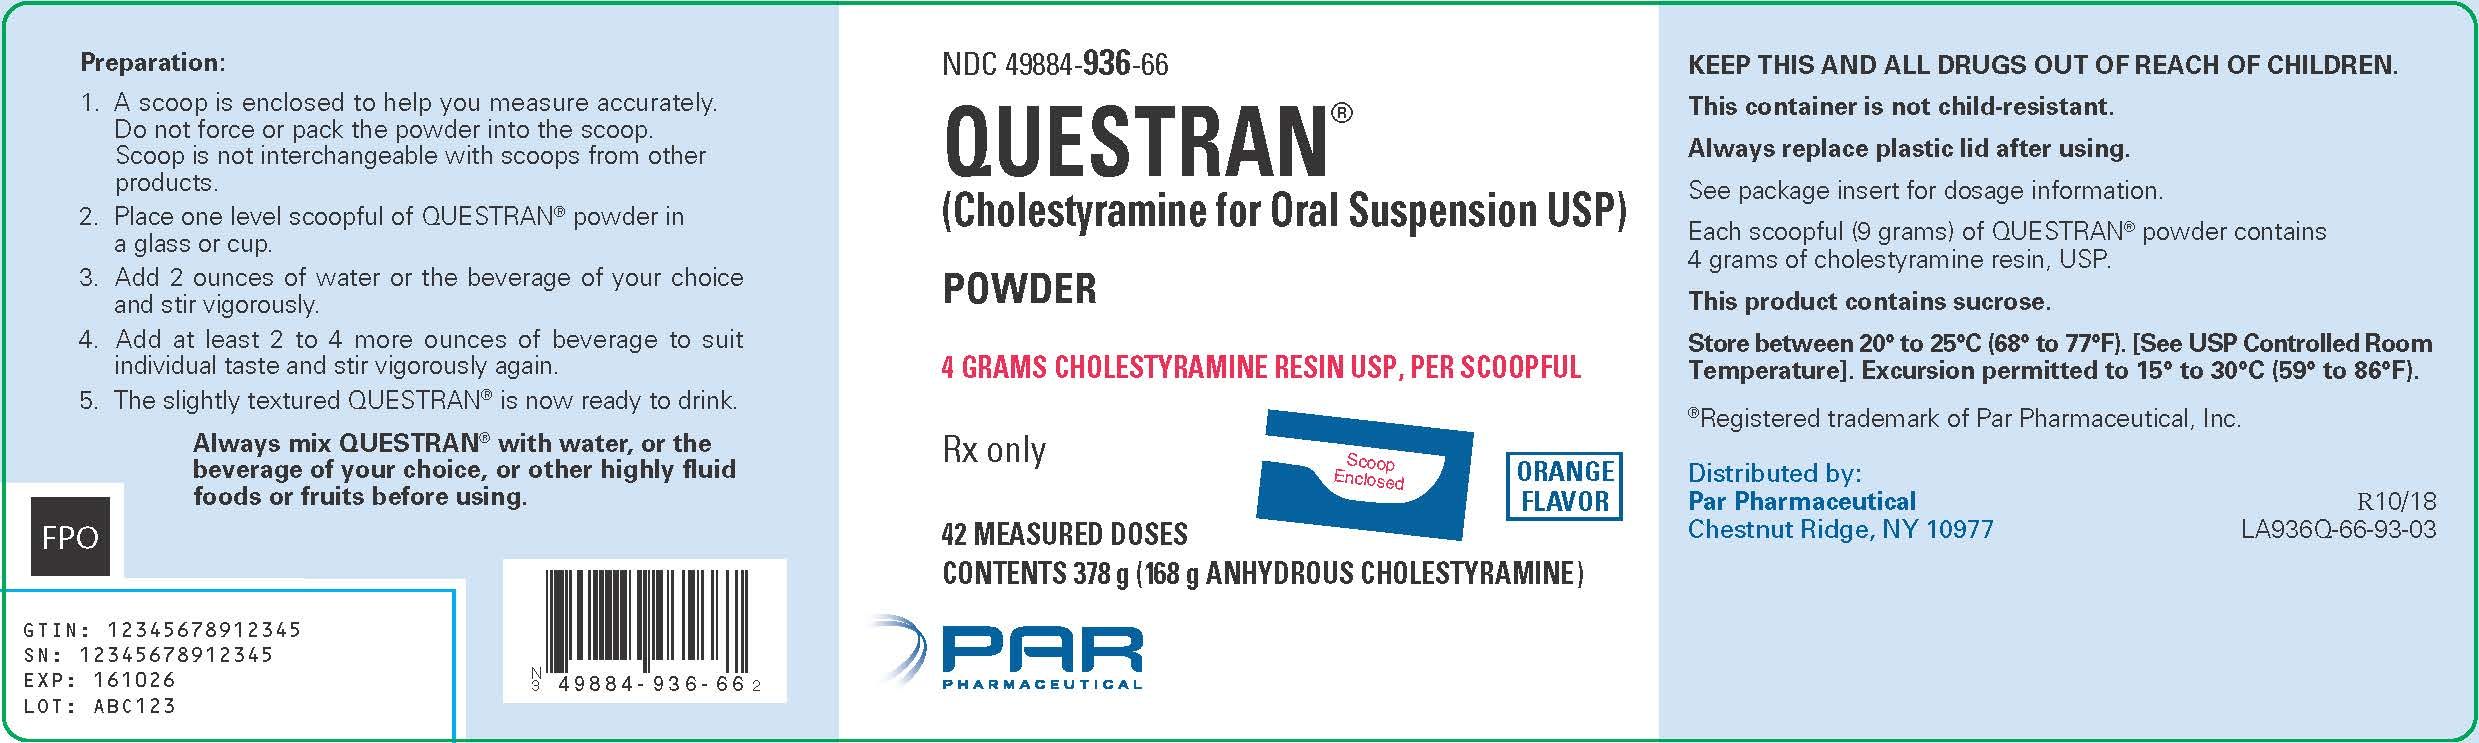 Questran Label - QPSI